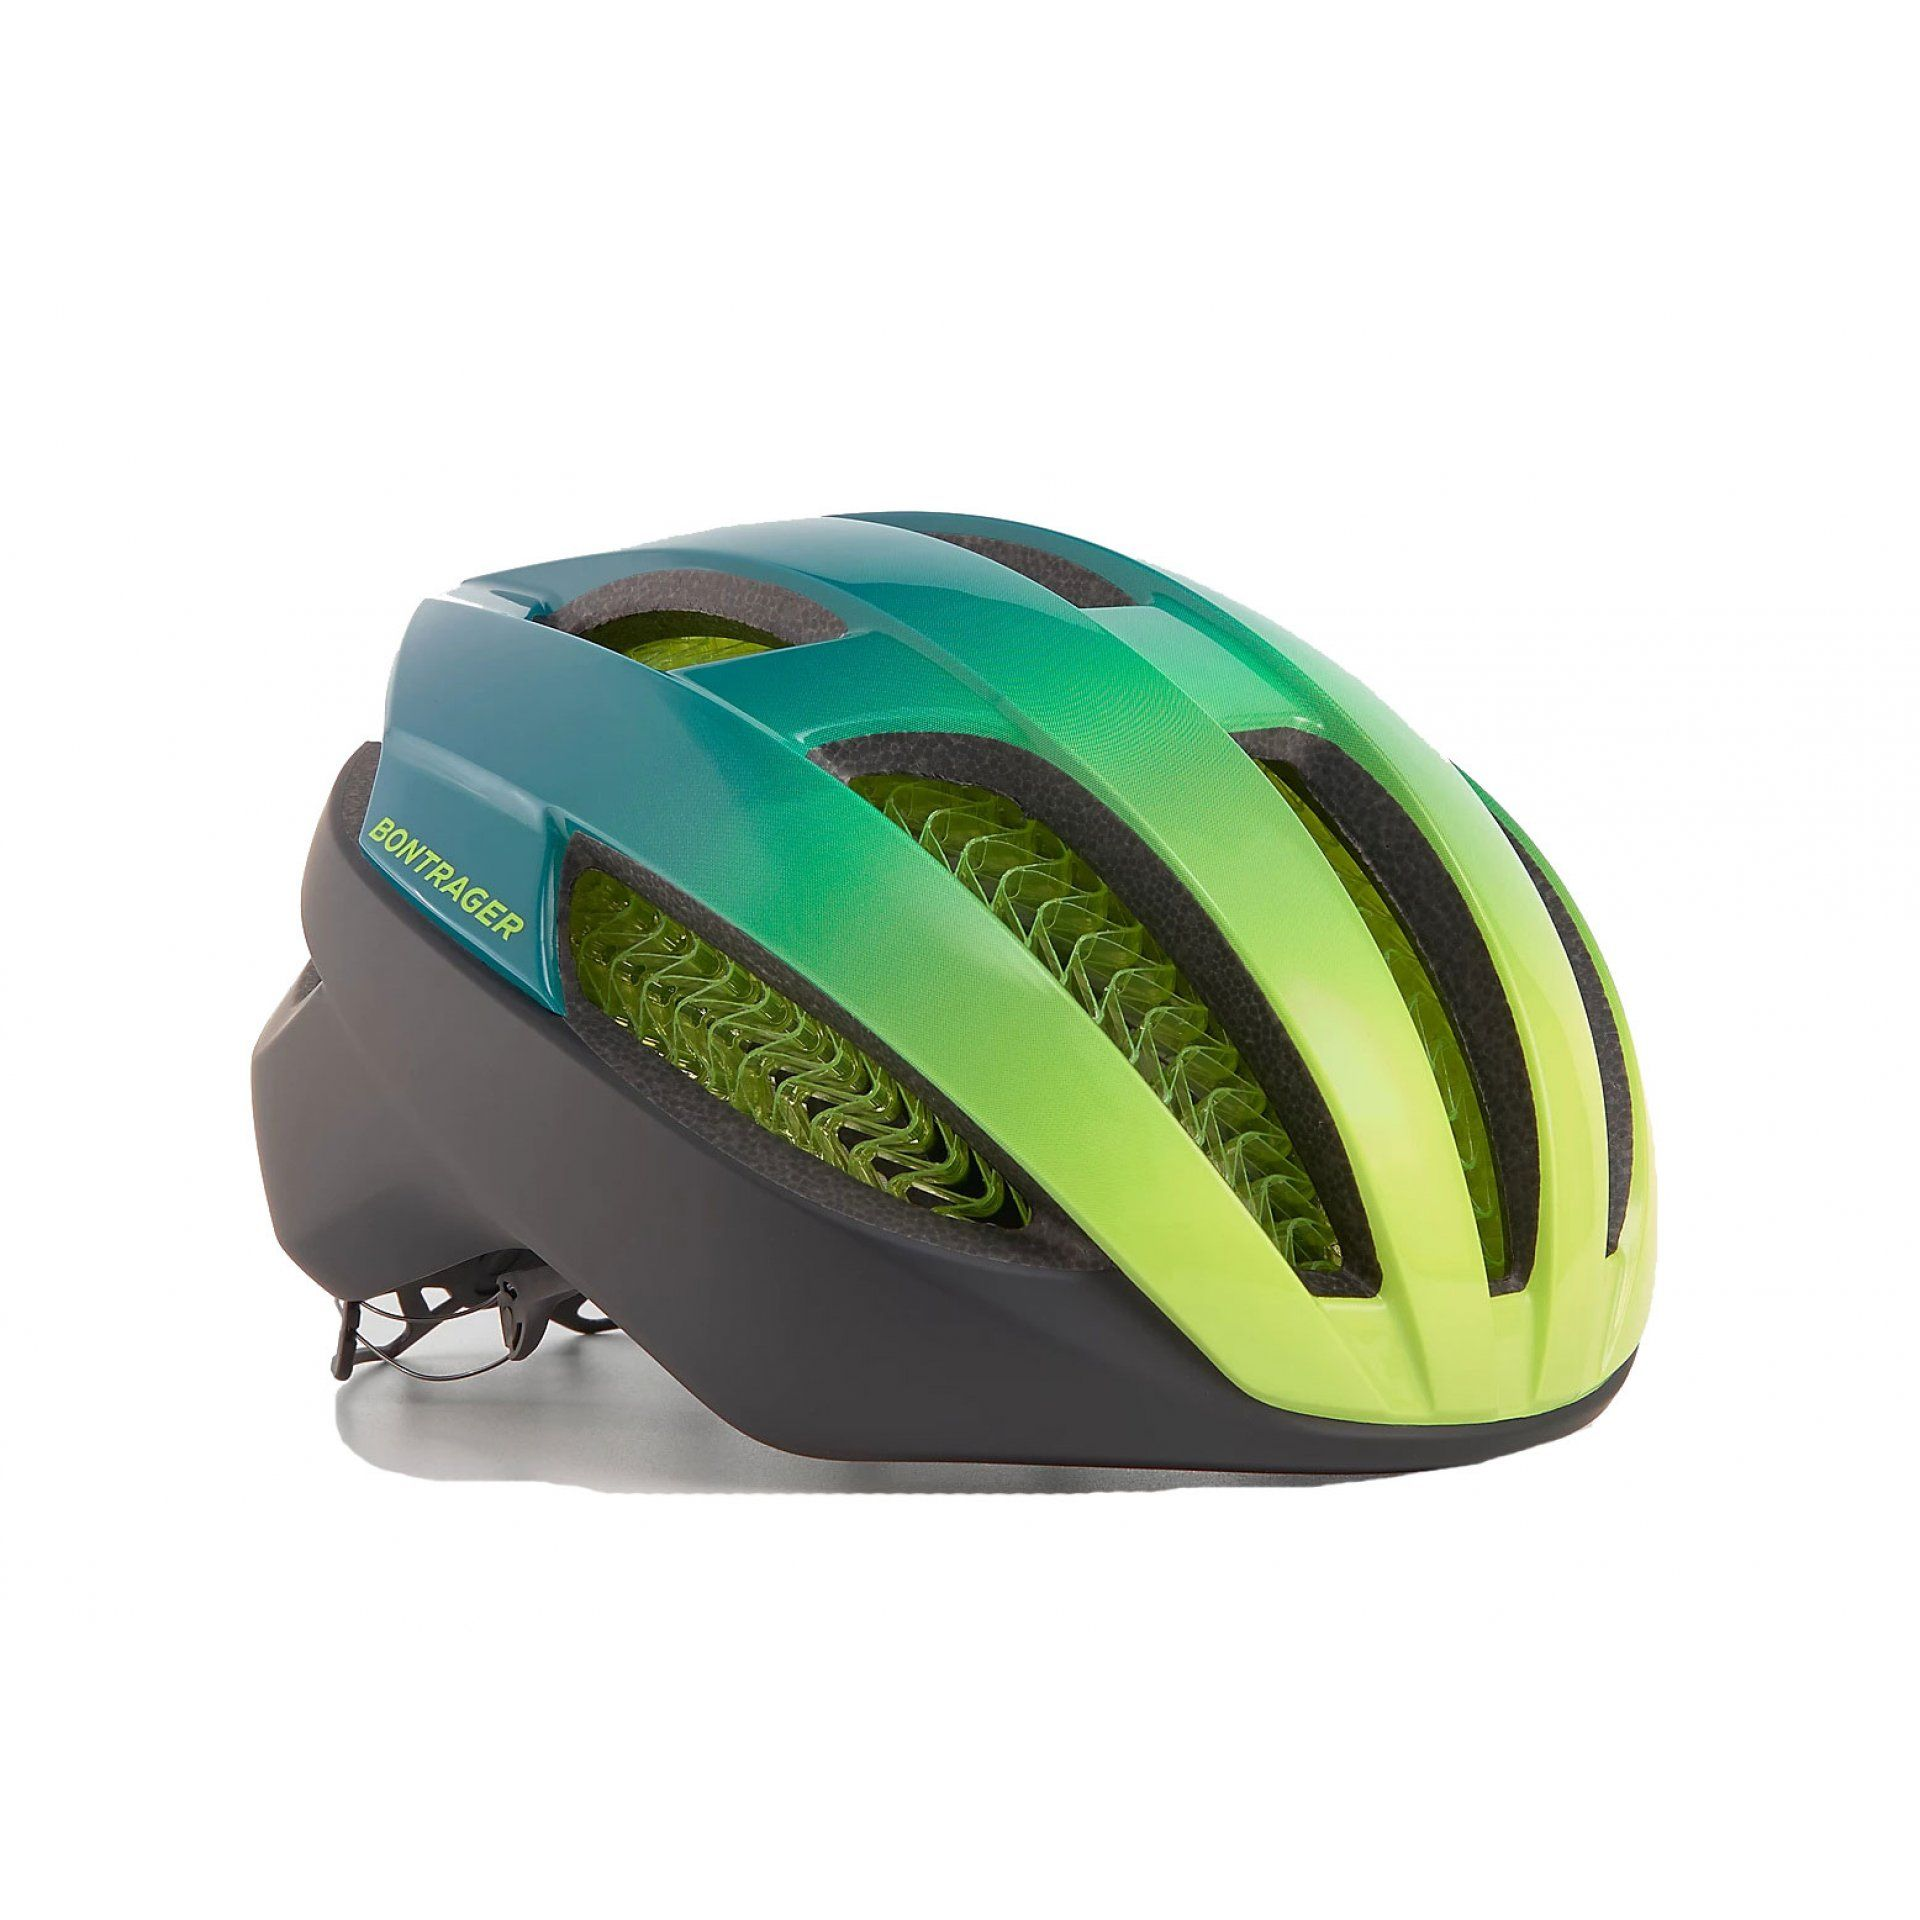 KASK ROWEROWY BONTRAGER SPECTER WAVECEL YELLOW VISIBILITY|TEAL